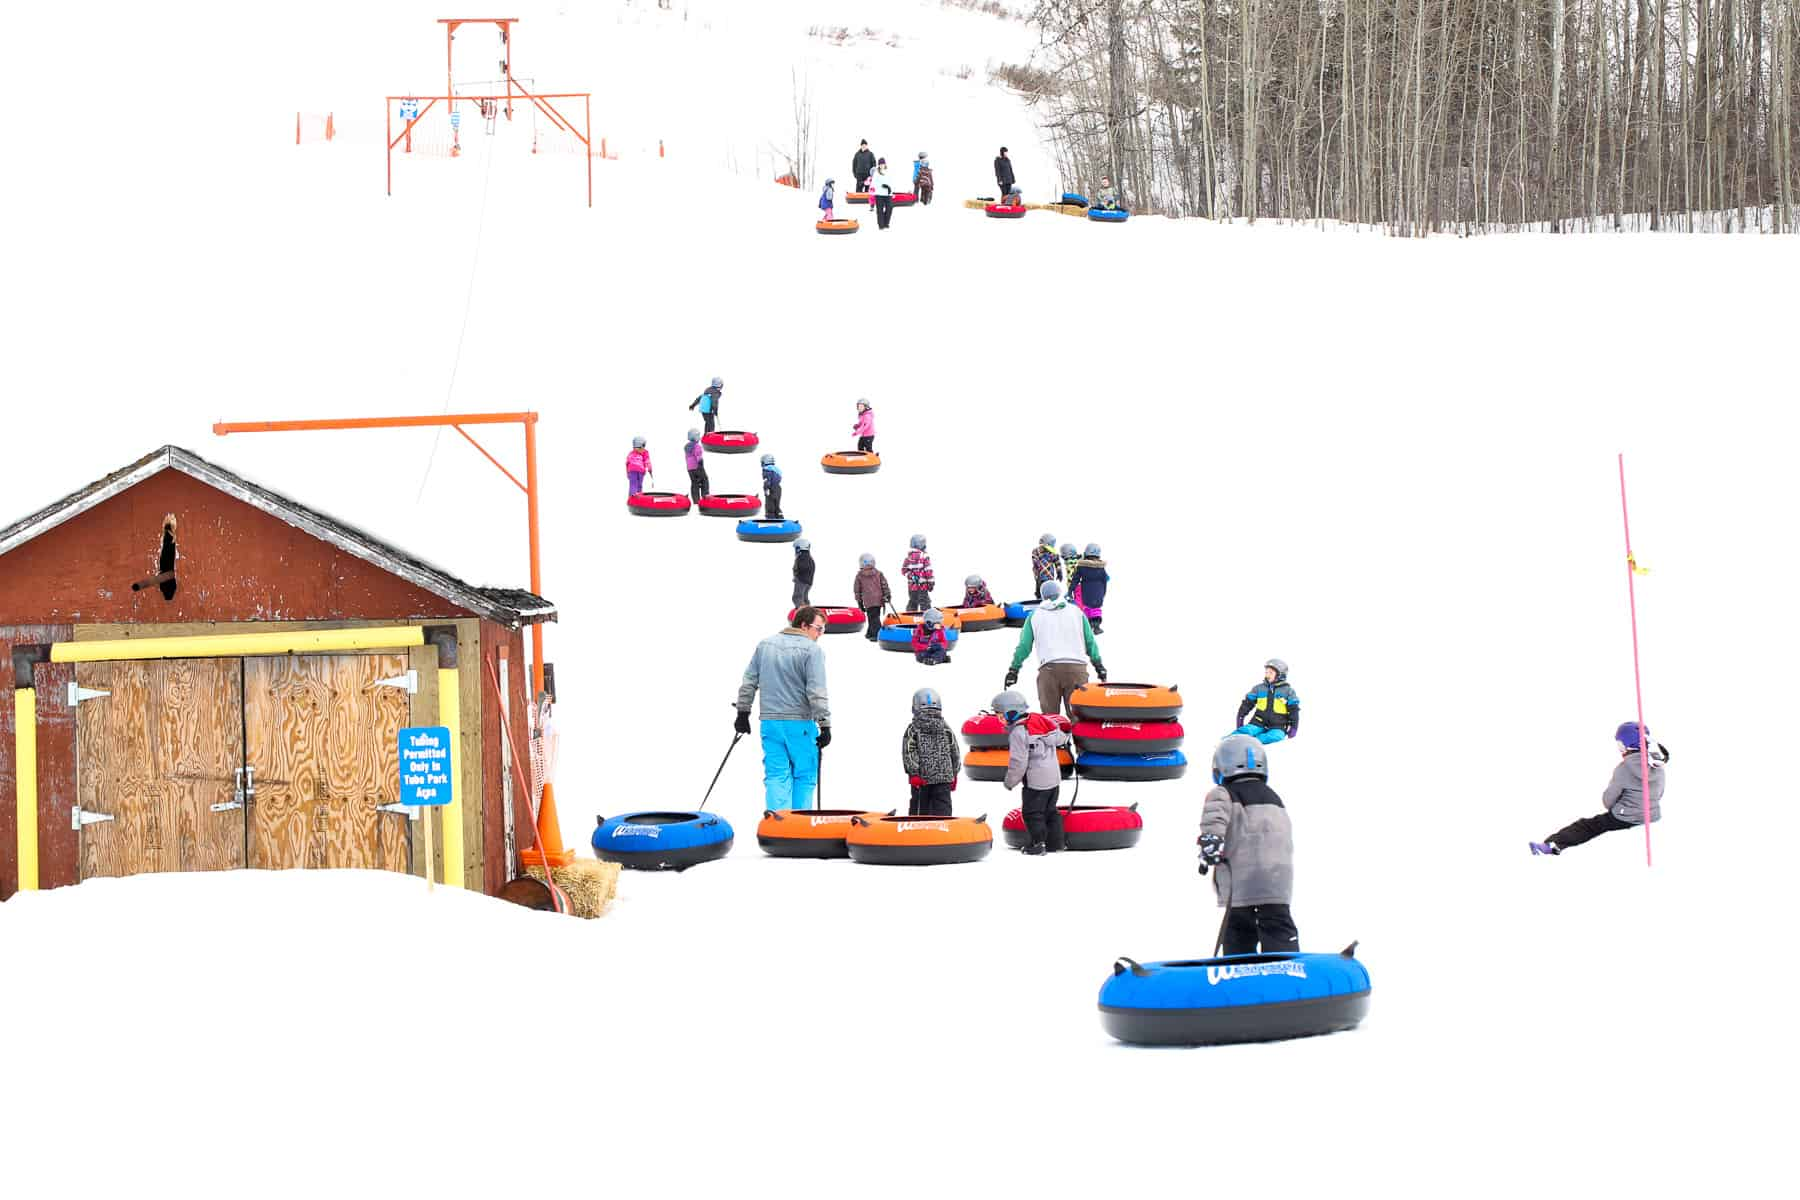 Every Sunday There's FREE Snow Tubing at Tawatinaw Valley Outside of Edmonton